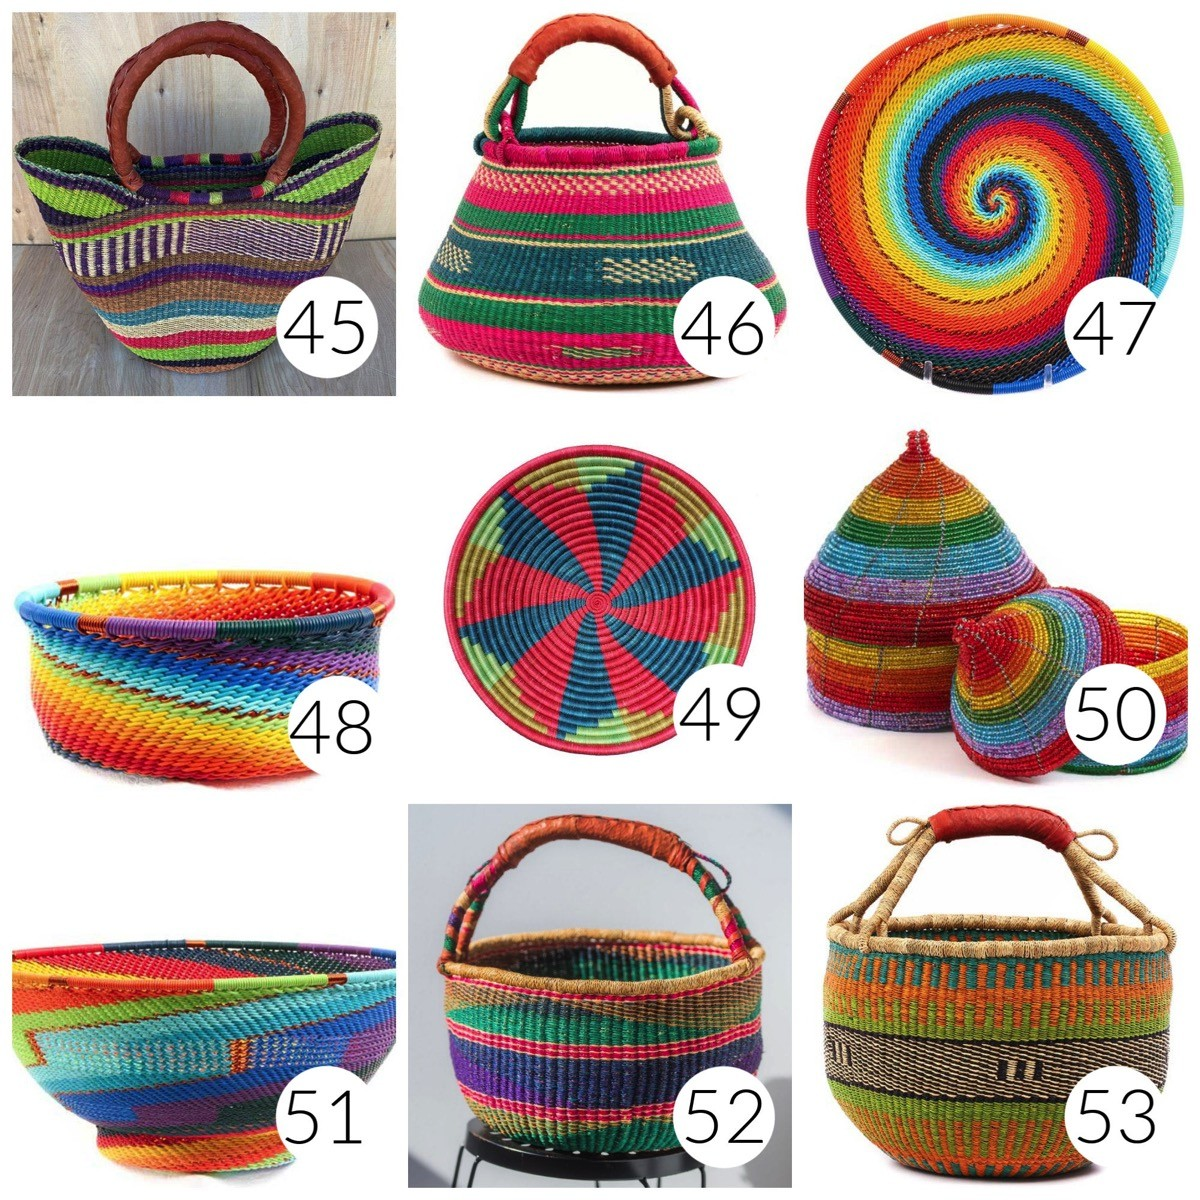 Bold colorful vibrant baskets